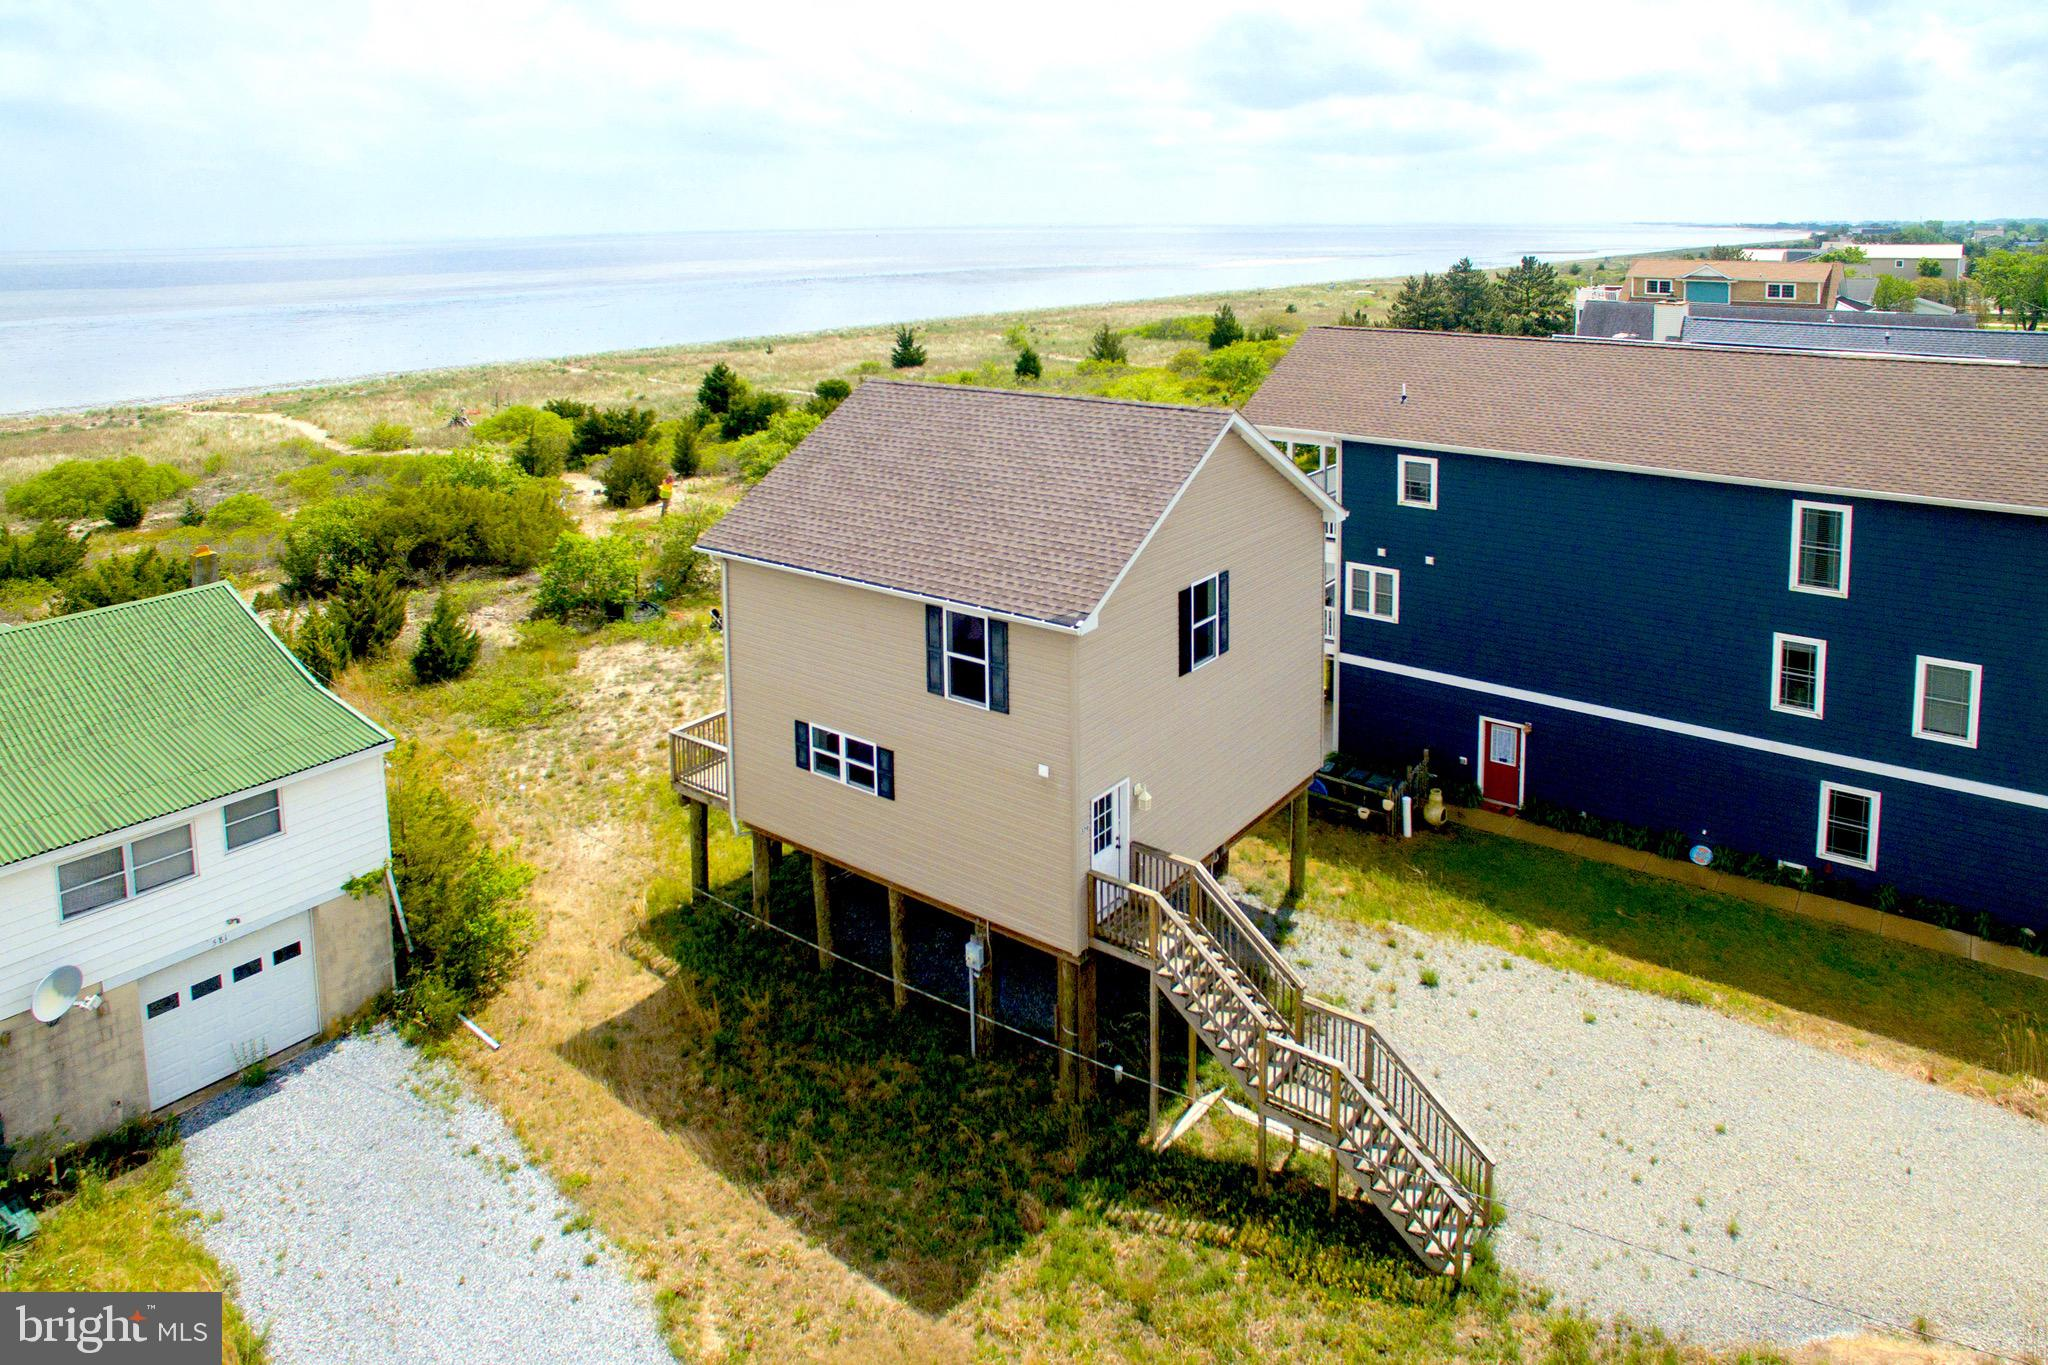 Bayfront/waterfront - New construction/ never occupied -  Enjoy Panoramic Bay views and brilliant sunsets from this new Waterfront home on Slaughter Beach .  Constructed in 2016 but never occupied this home is good as new.  A modern floor plan with a bright kitchen and main living area facing the Bay, this home is move-in ready and begging for the finishing touches of it's new owner.  The second floor features a bay front master suite, 2 additional bedrooms and a full bath.  Welcome Home!!